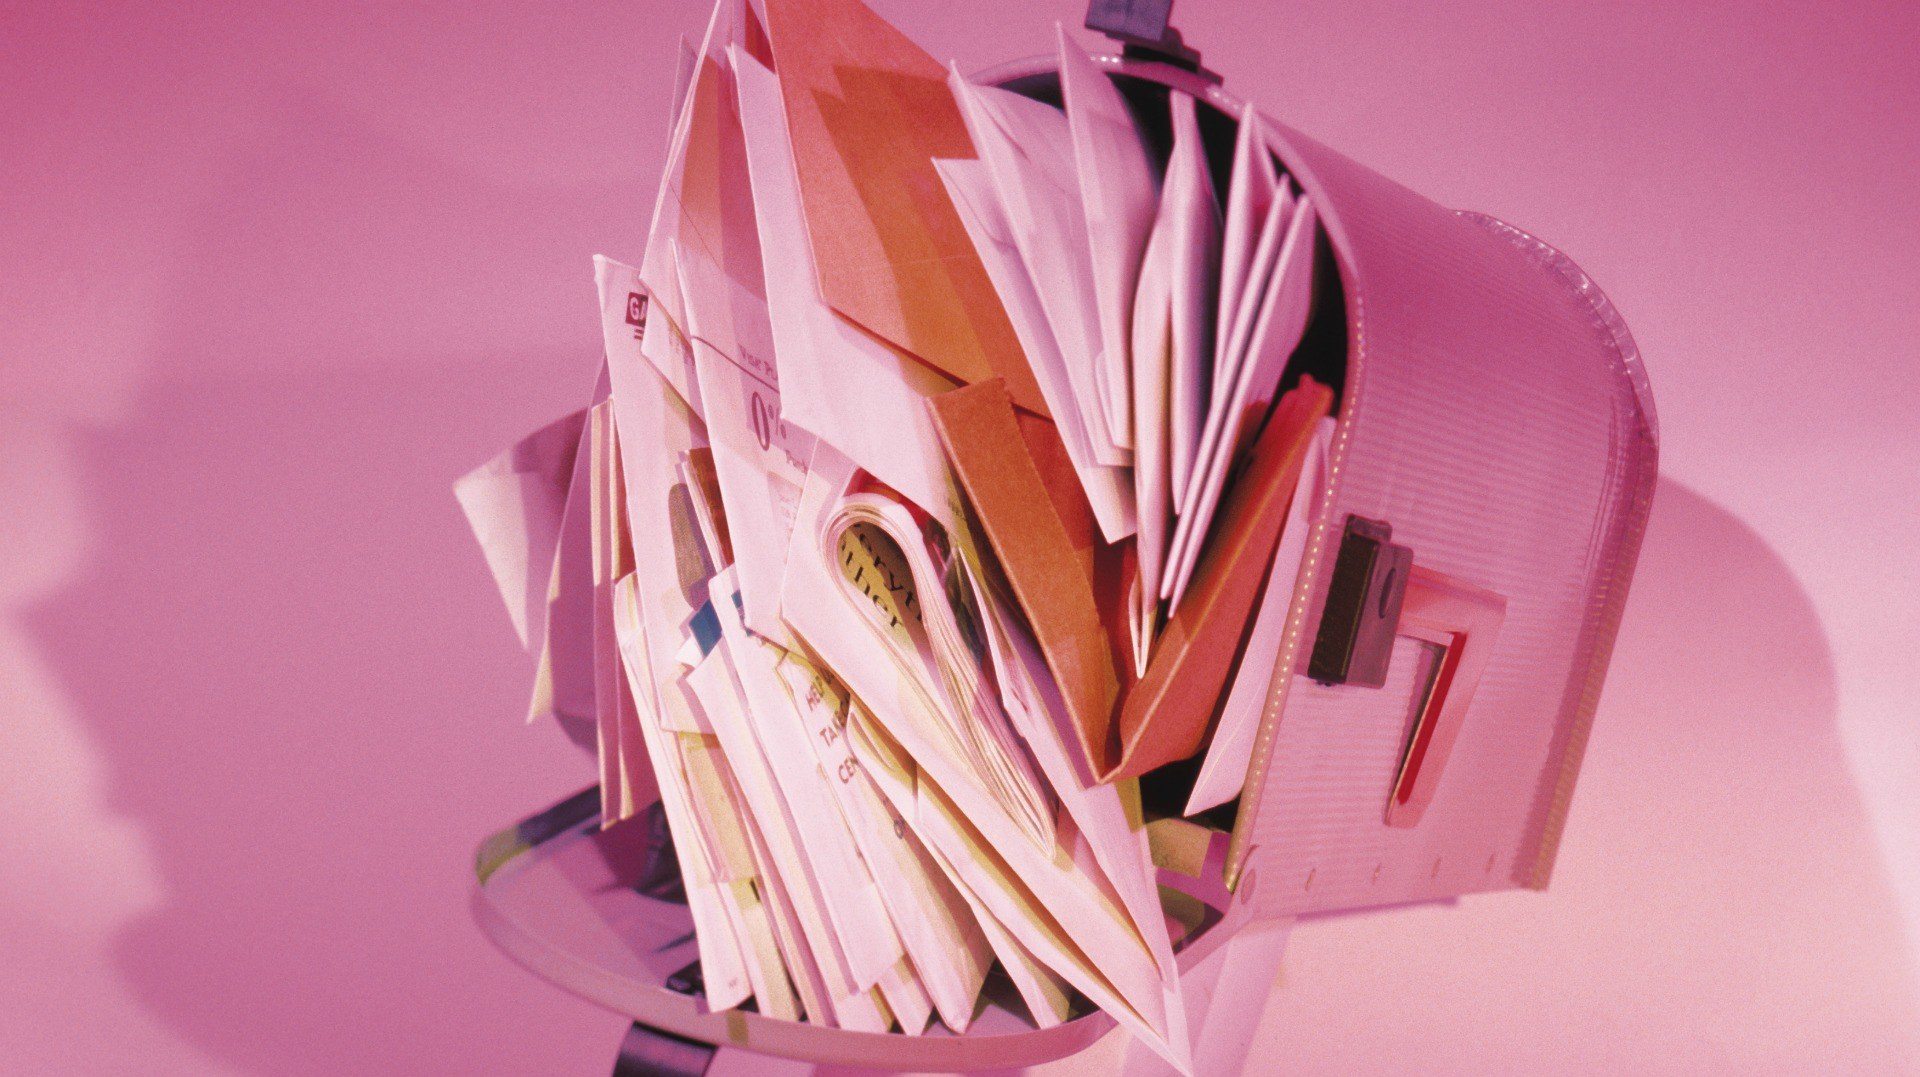 How To Stop Getting All Those Annoying Catalogs In The Mail Sheknows